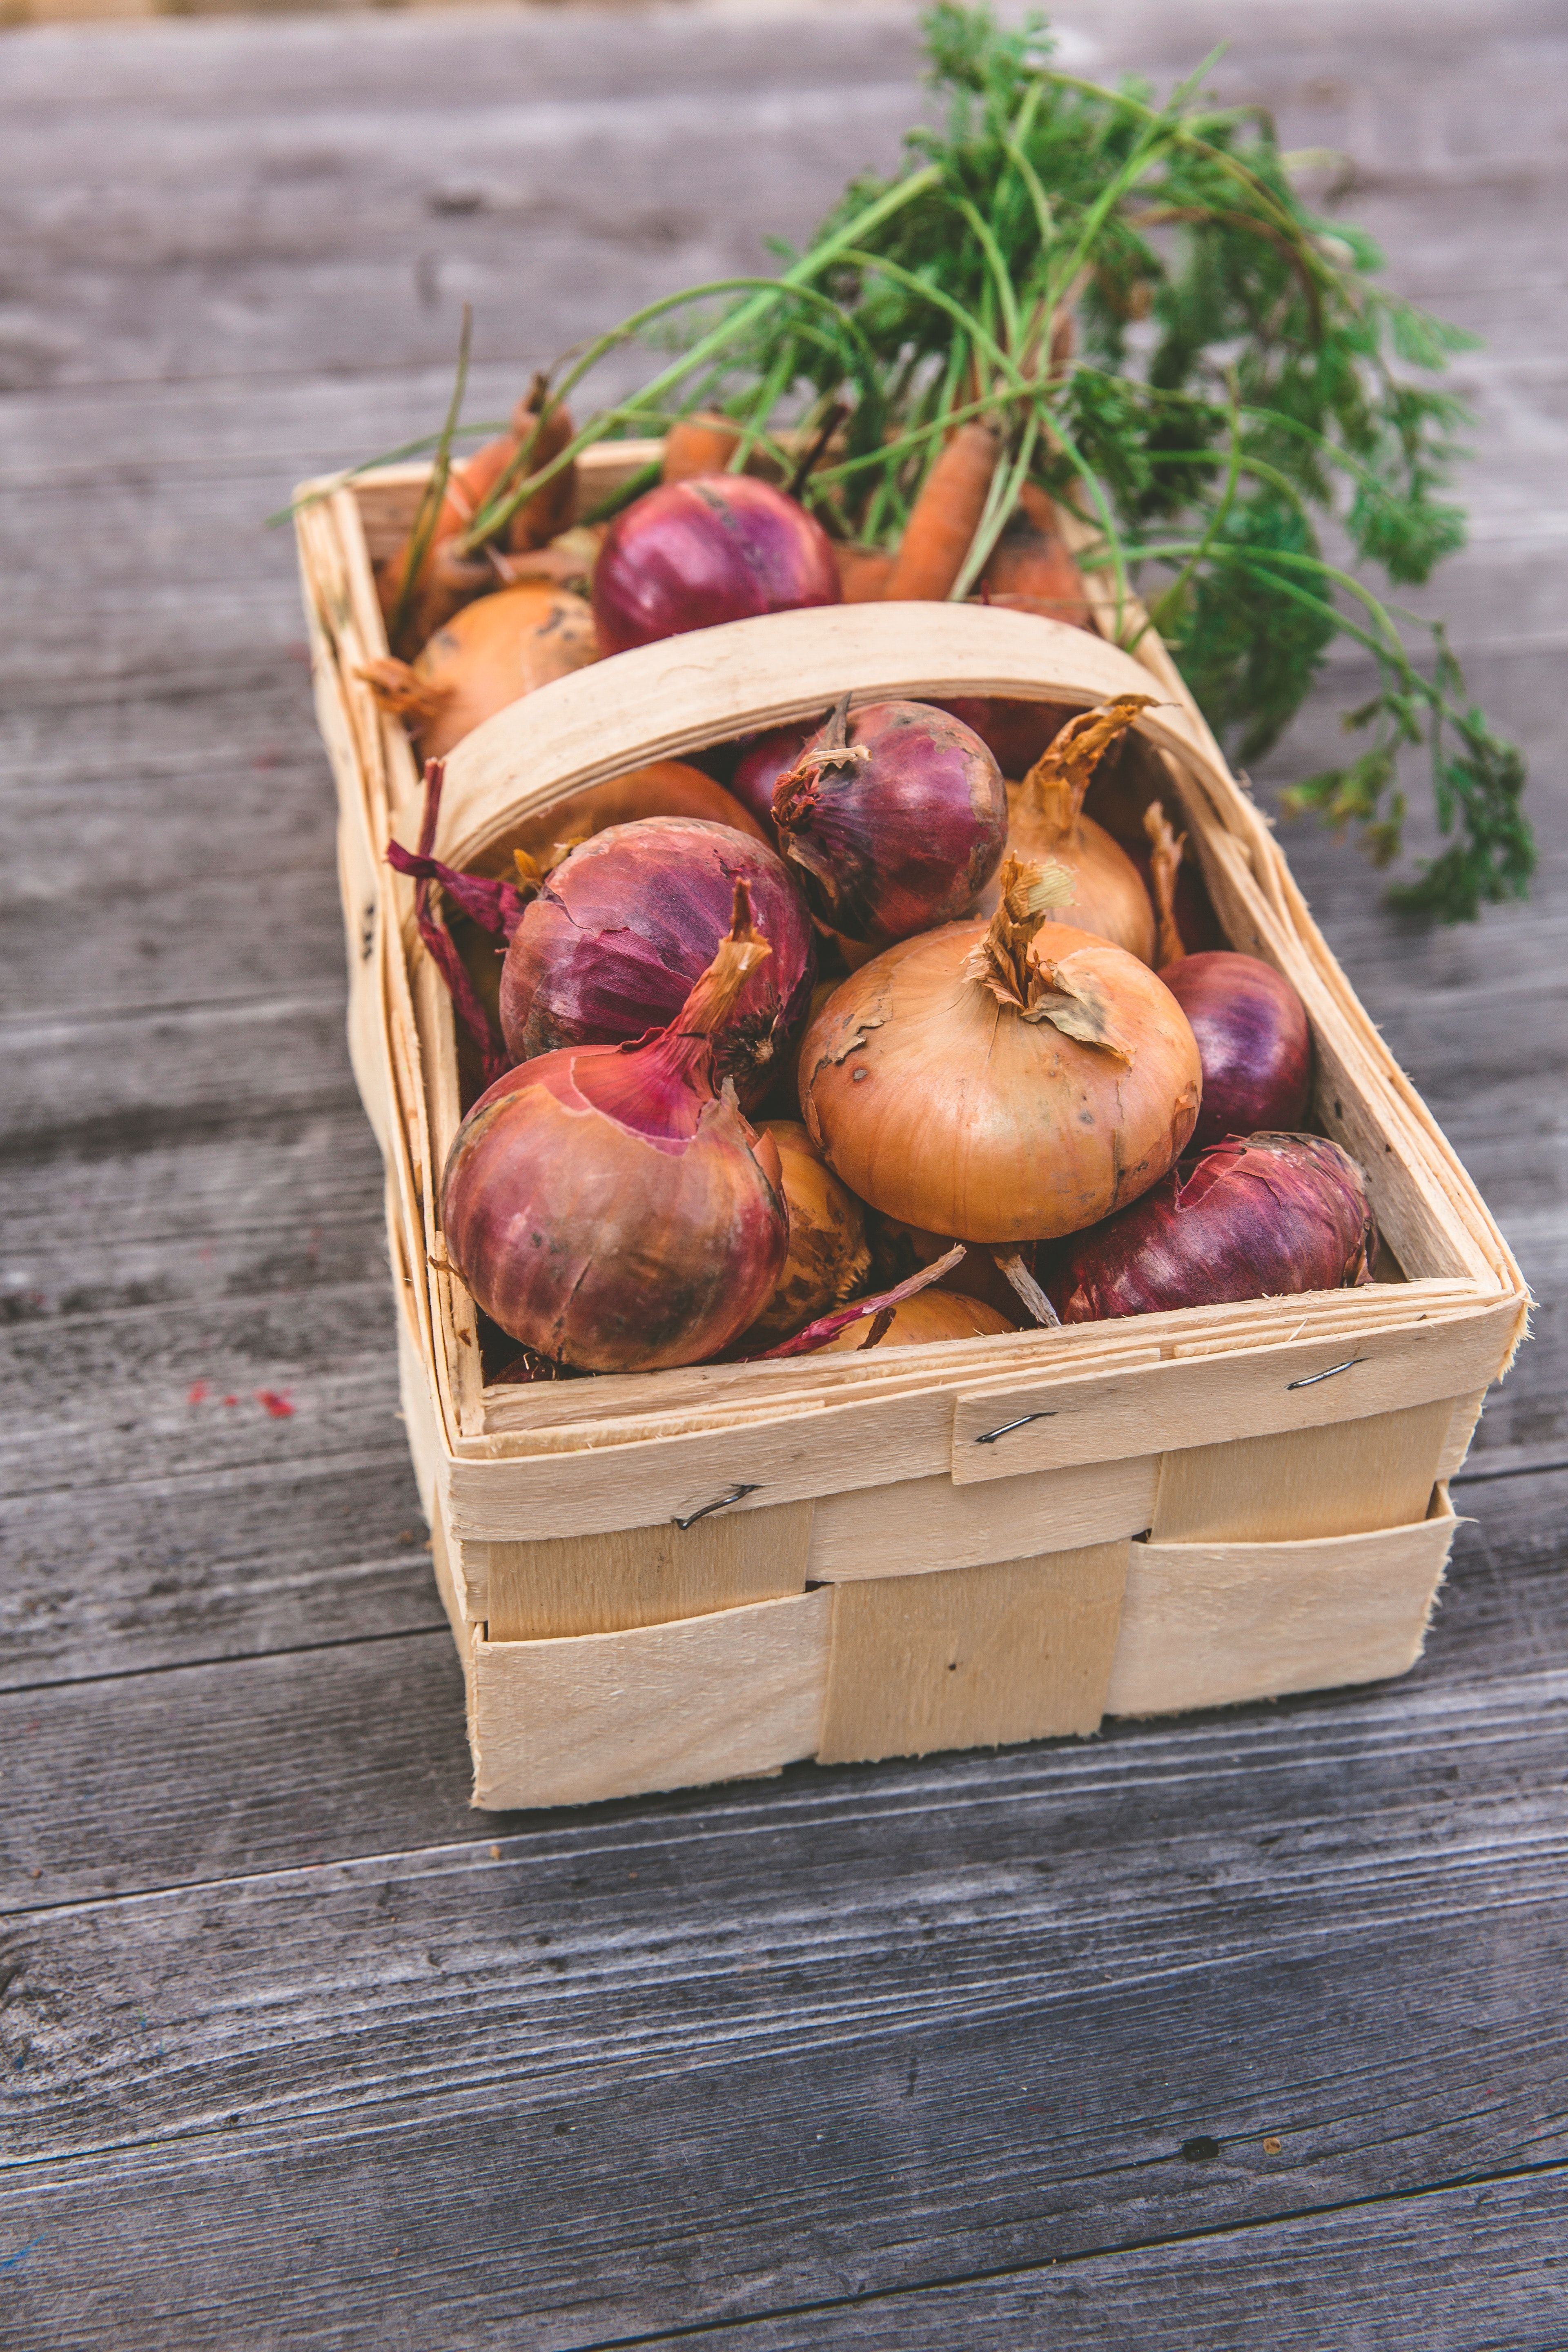 Onion basket. Source: Pexels.